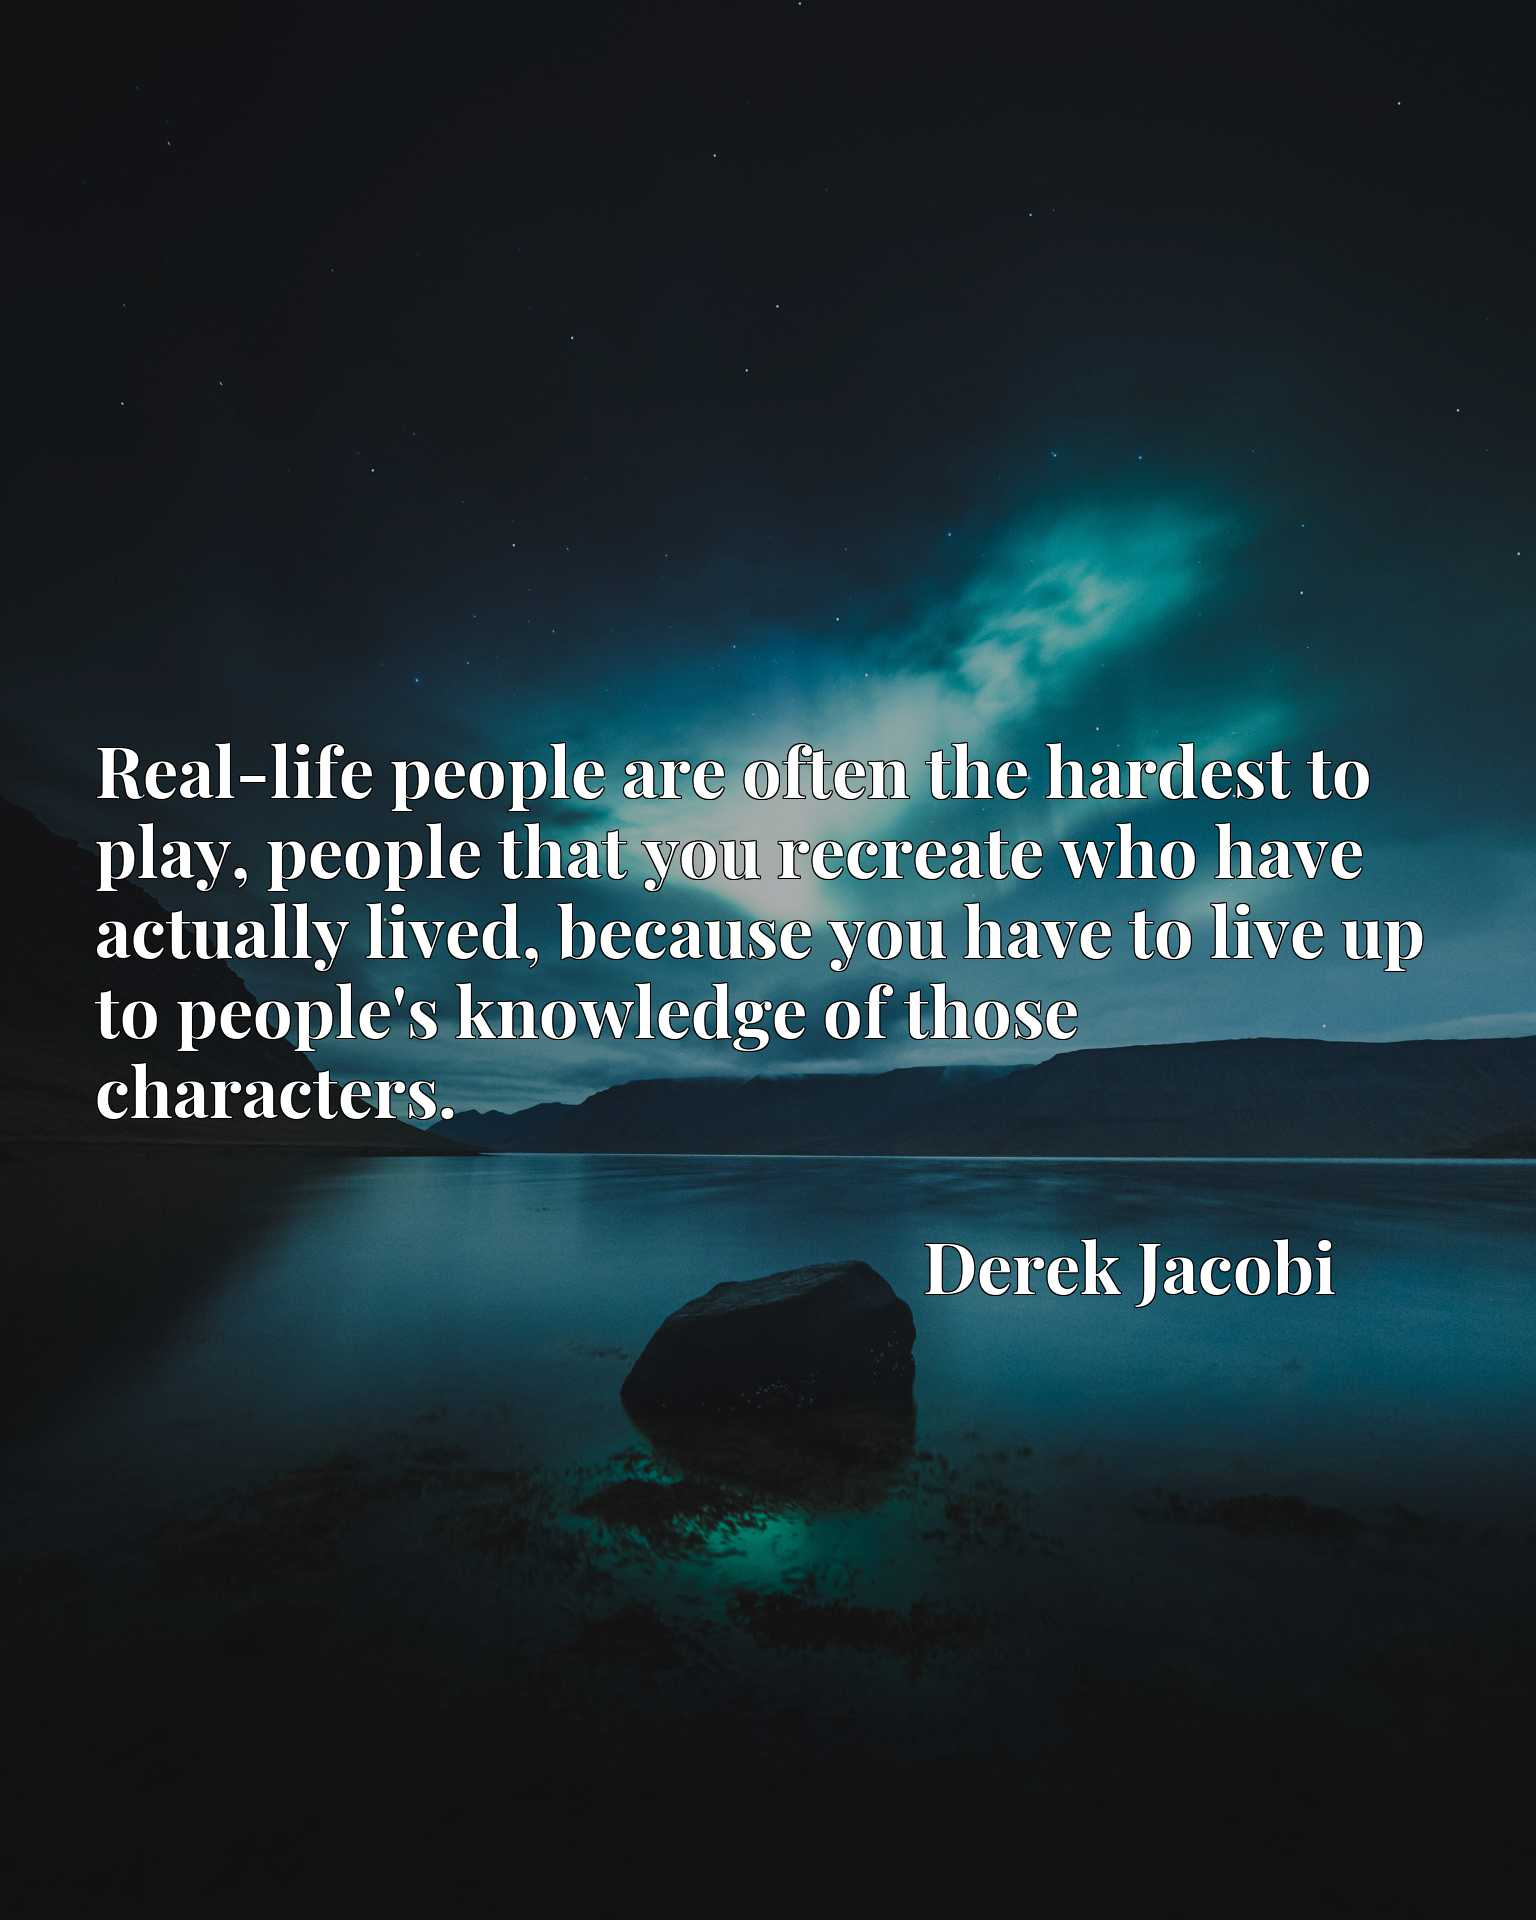 Quote Picture :Real-life people are often the hardest to play, people that you recreate who have actually lived, because you have to live up to people's knowledge of those characters.